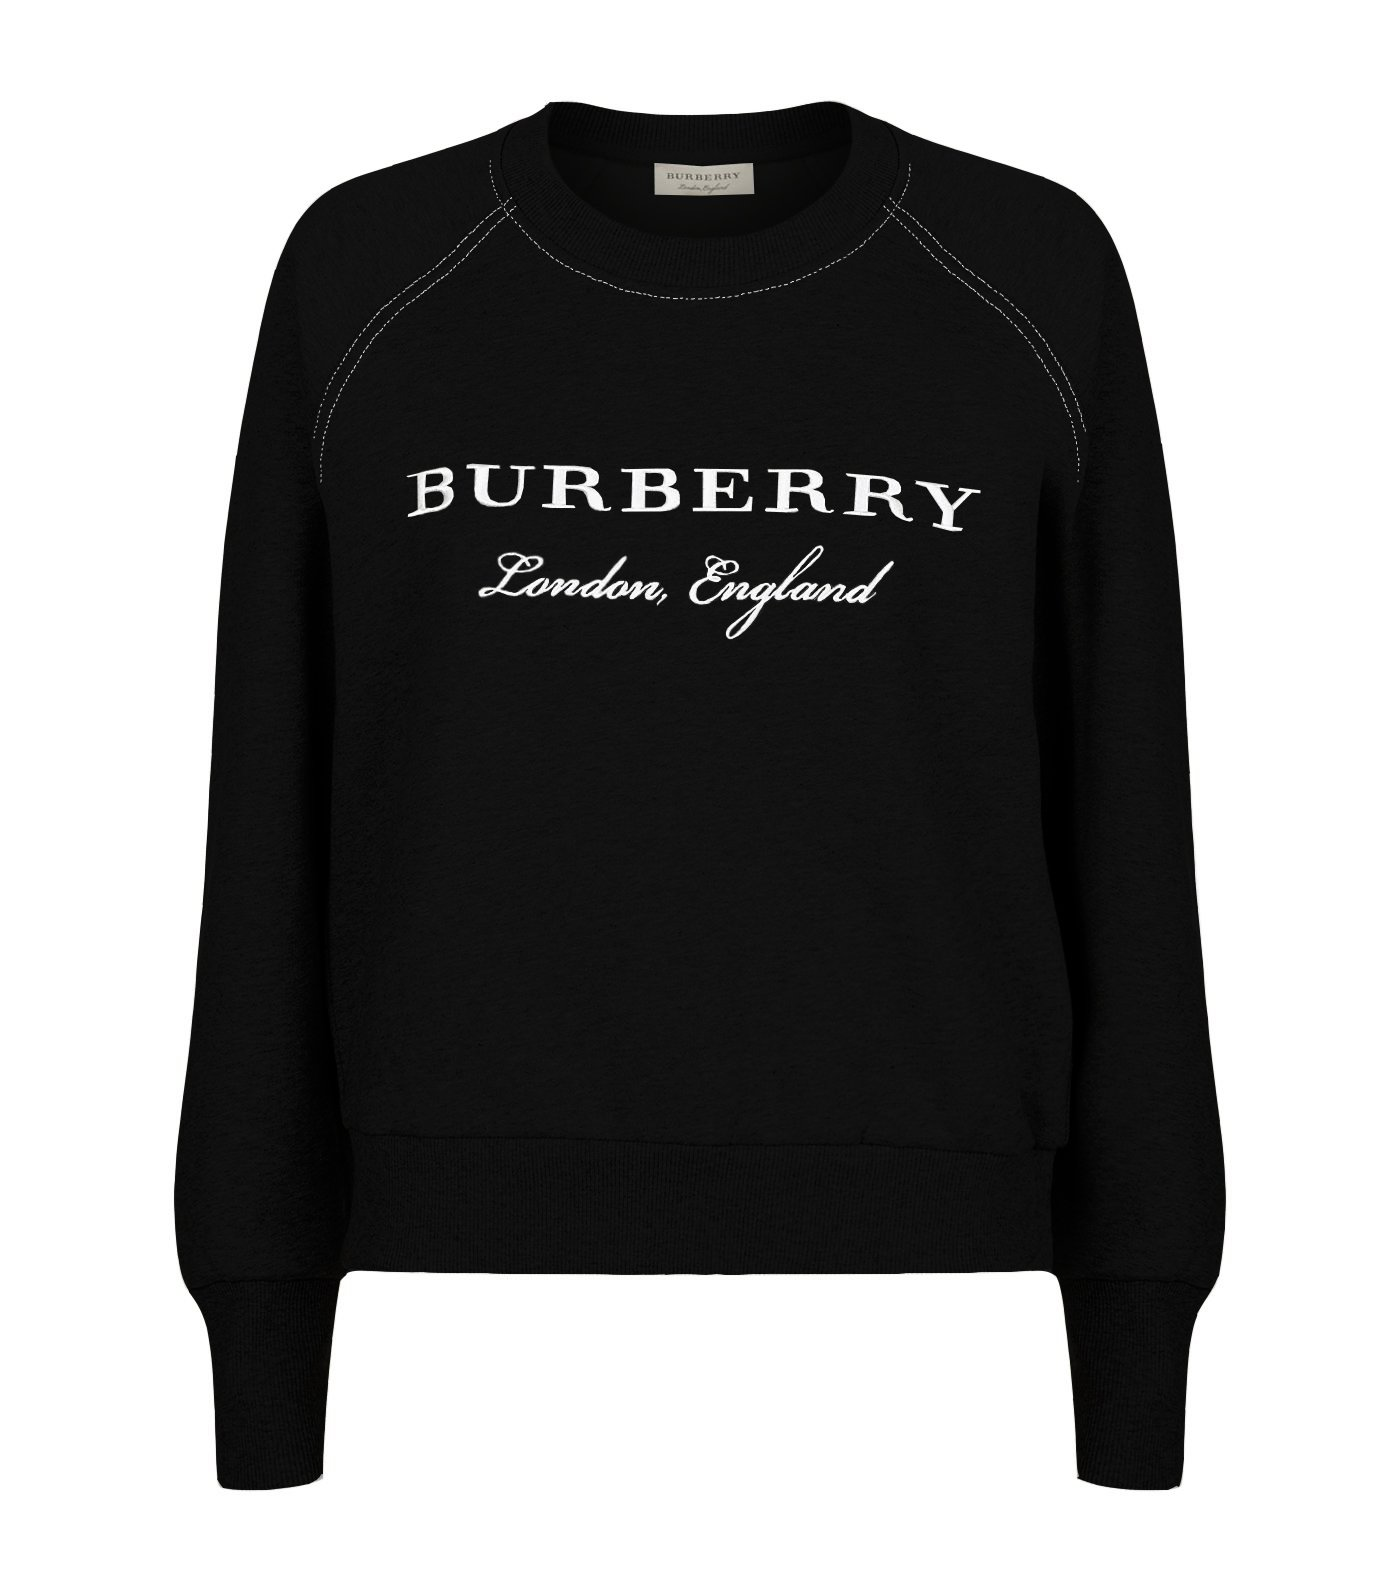 Burberry Women's Black Torto Sweatshirt M